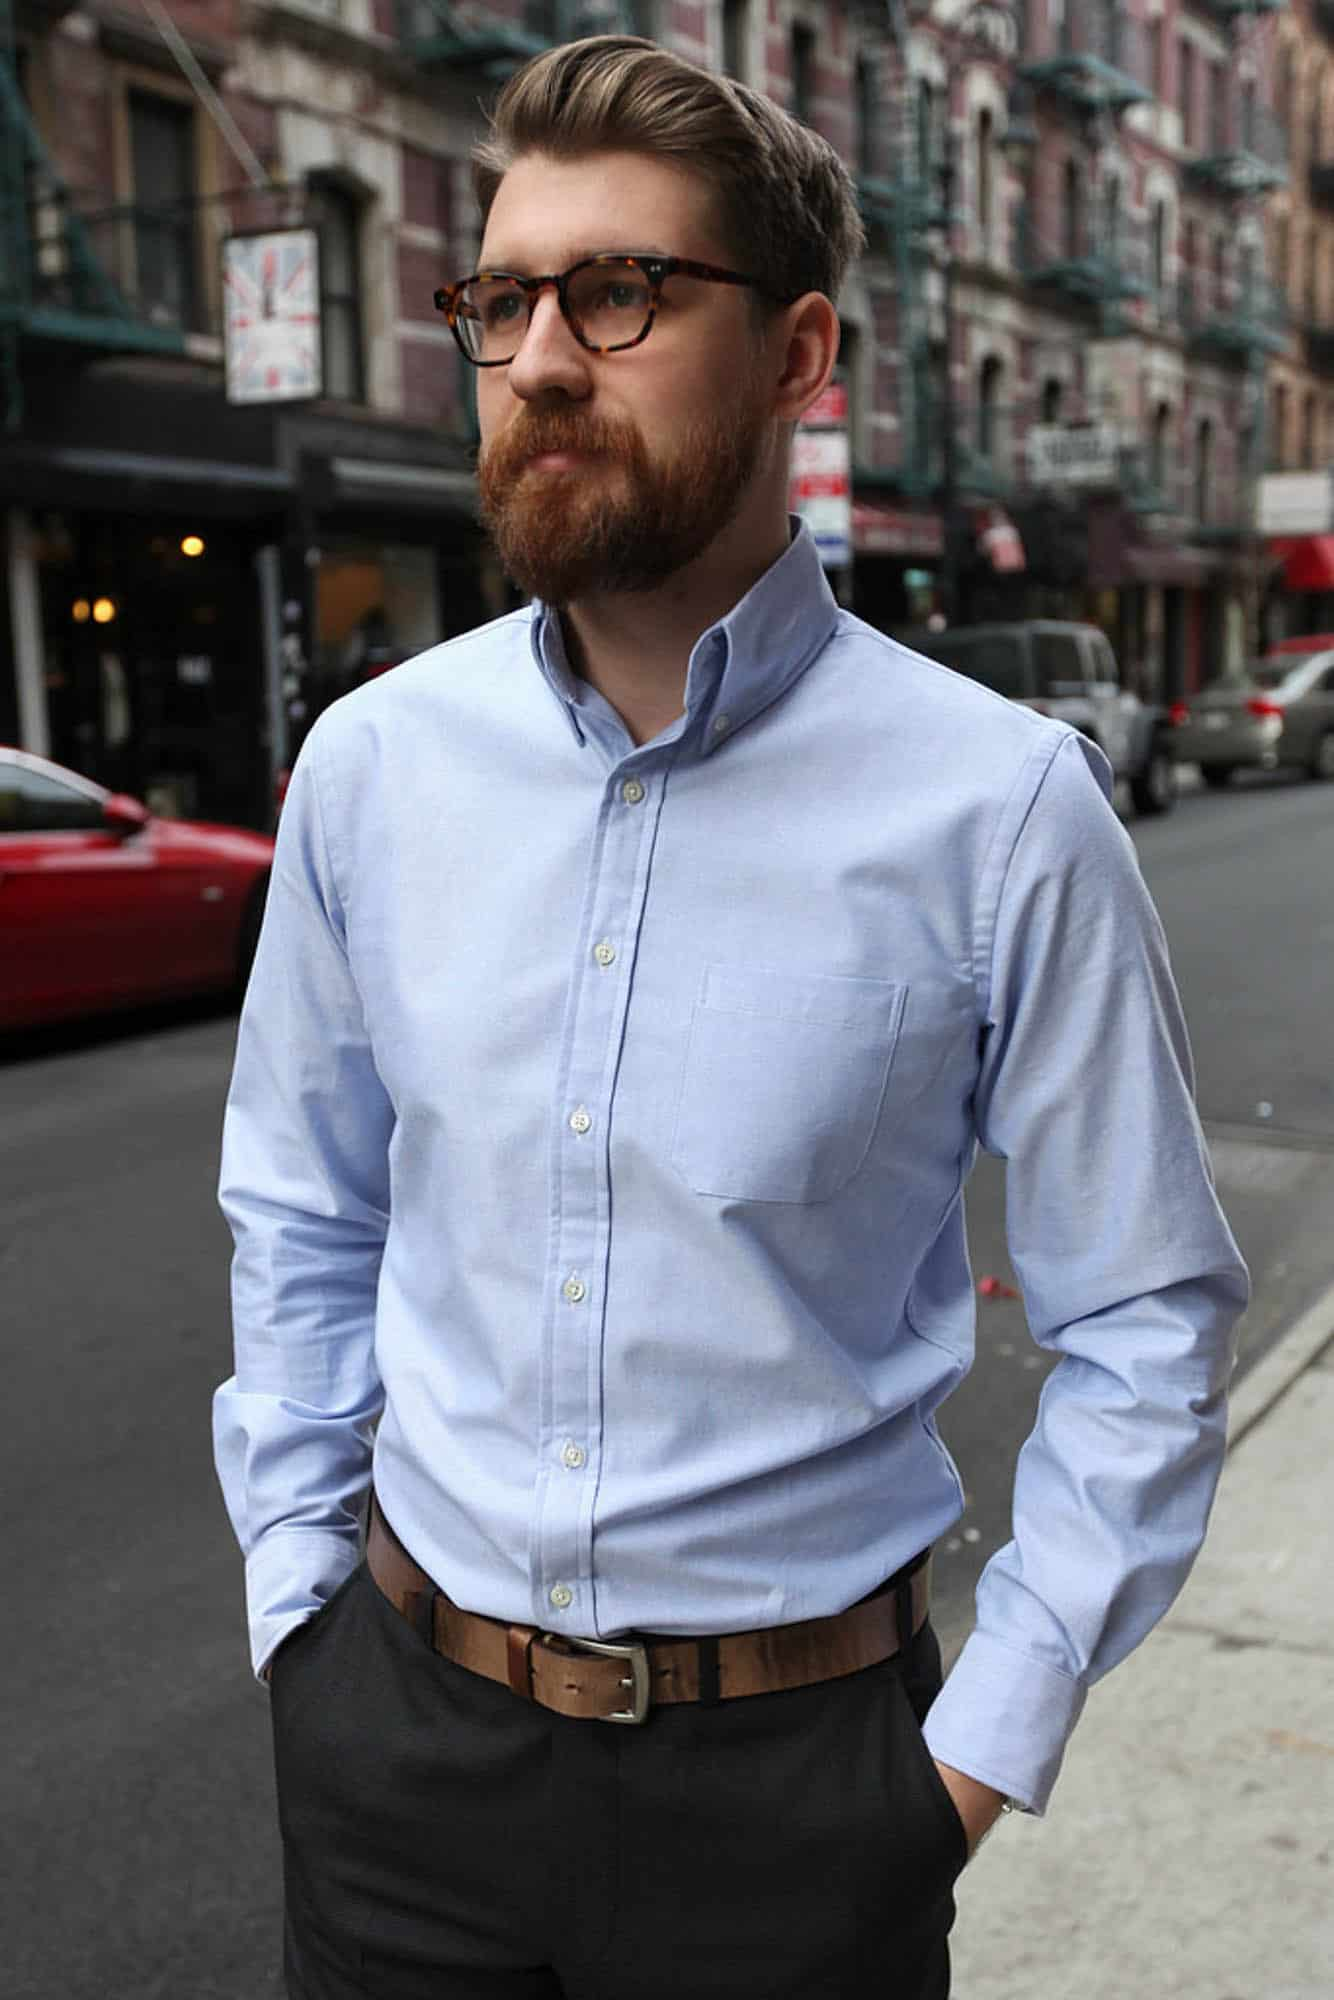 Oxford Cloth Button Down Shirt Guide - OCBD — Gentleman's Gazette